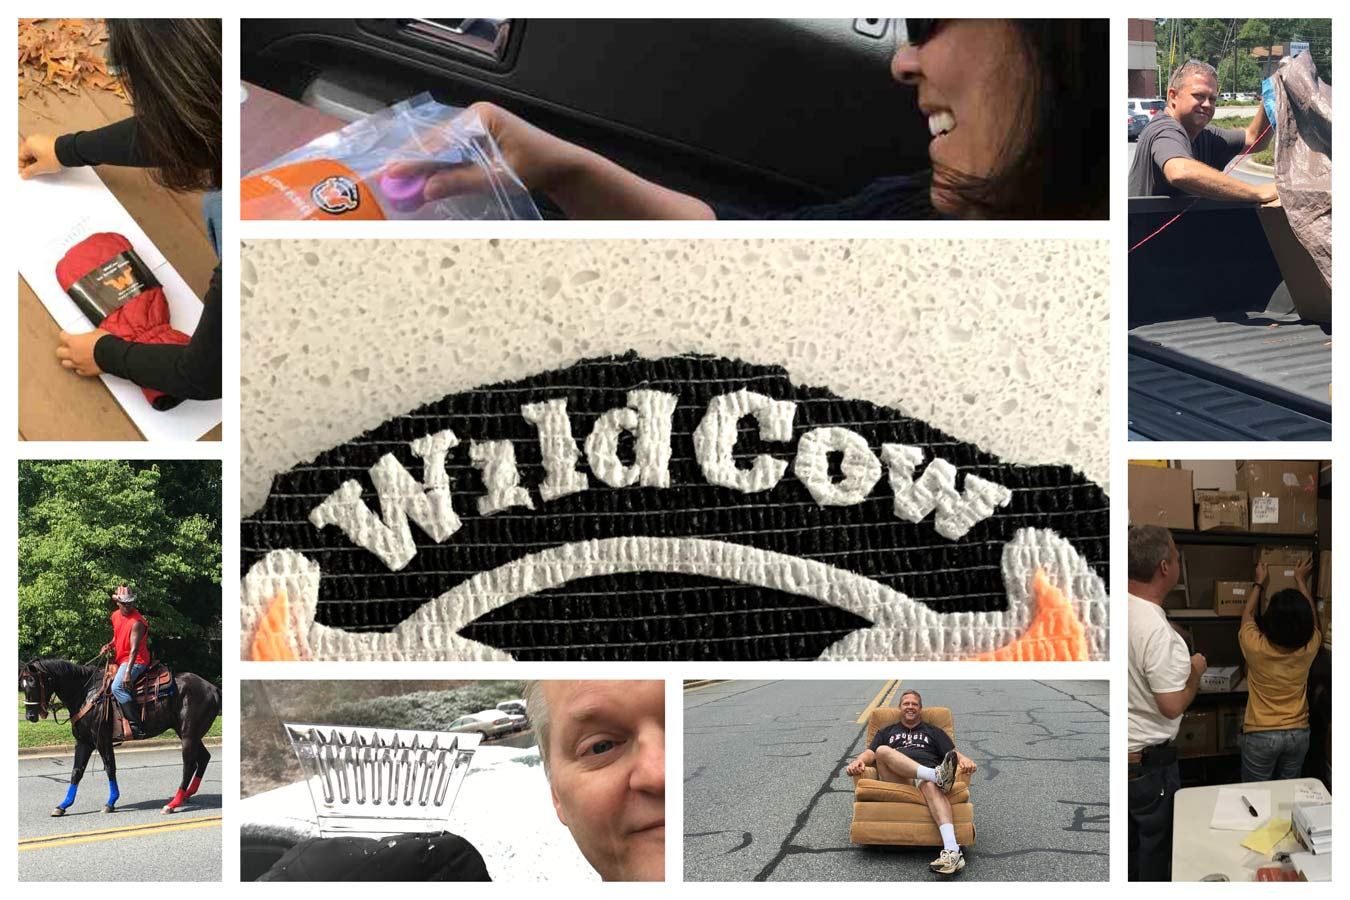 About the WildCow brand, people and products